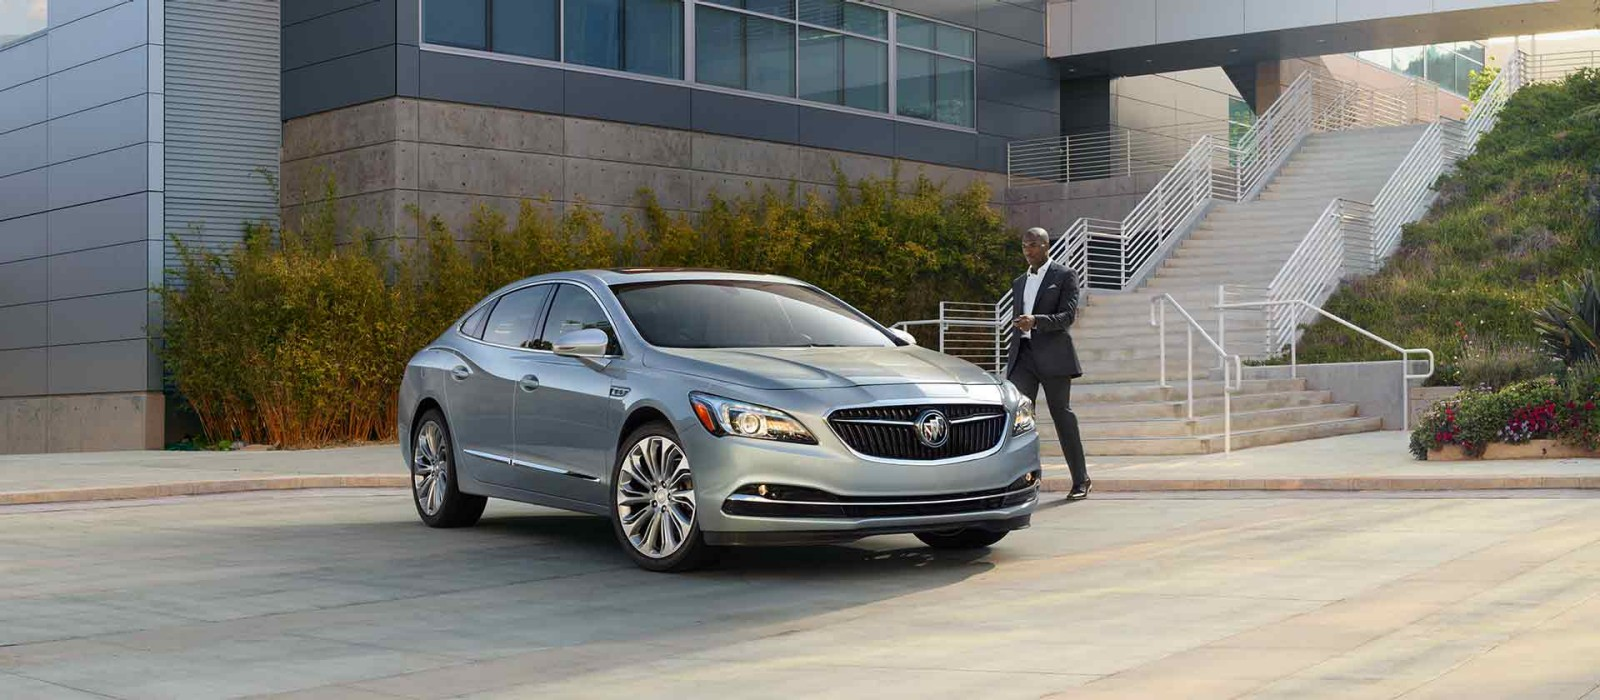 2017 buick lacrosse for sale near youngstown oh sweeney chevy buick gmc. Black Bedroom Furniture Sets. Home Design Ideas